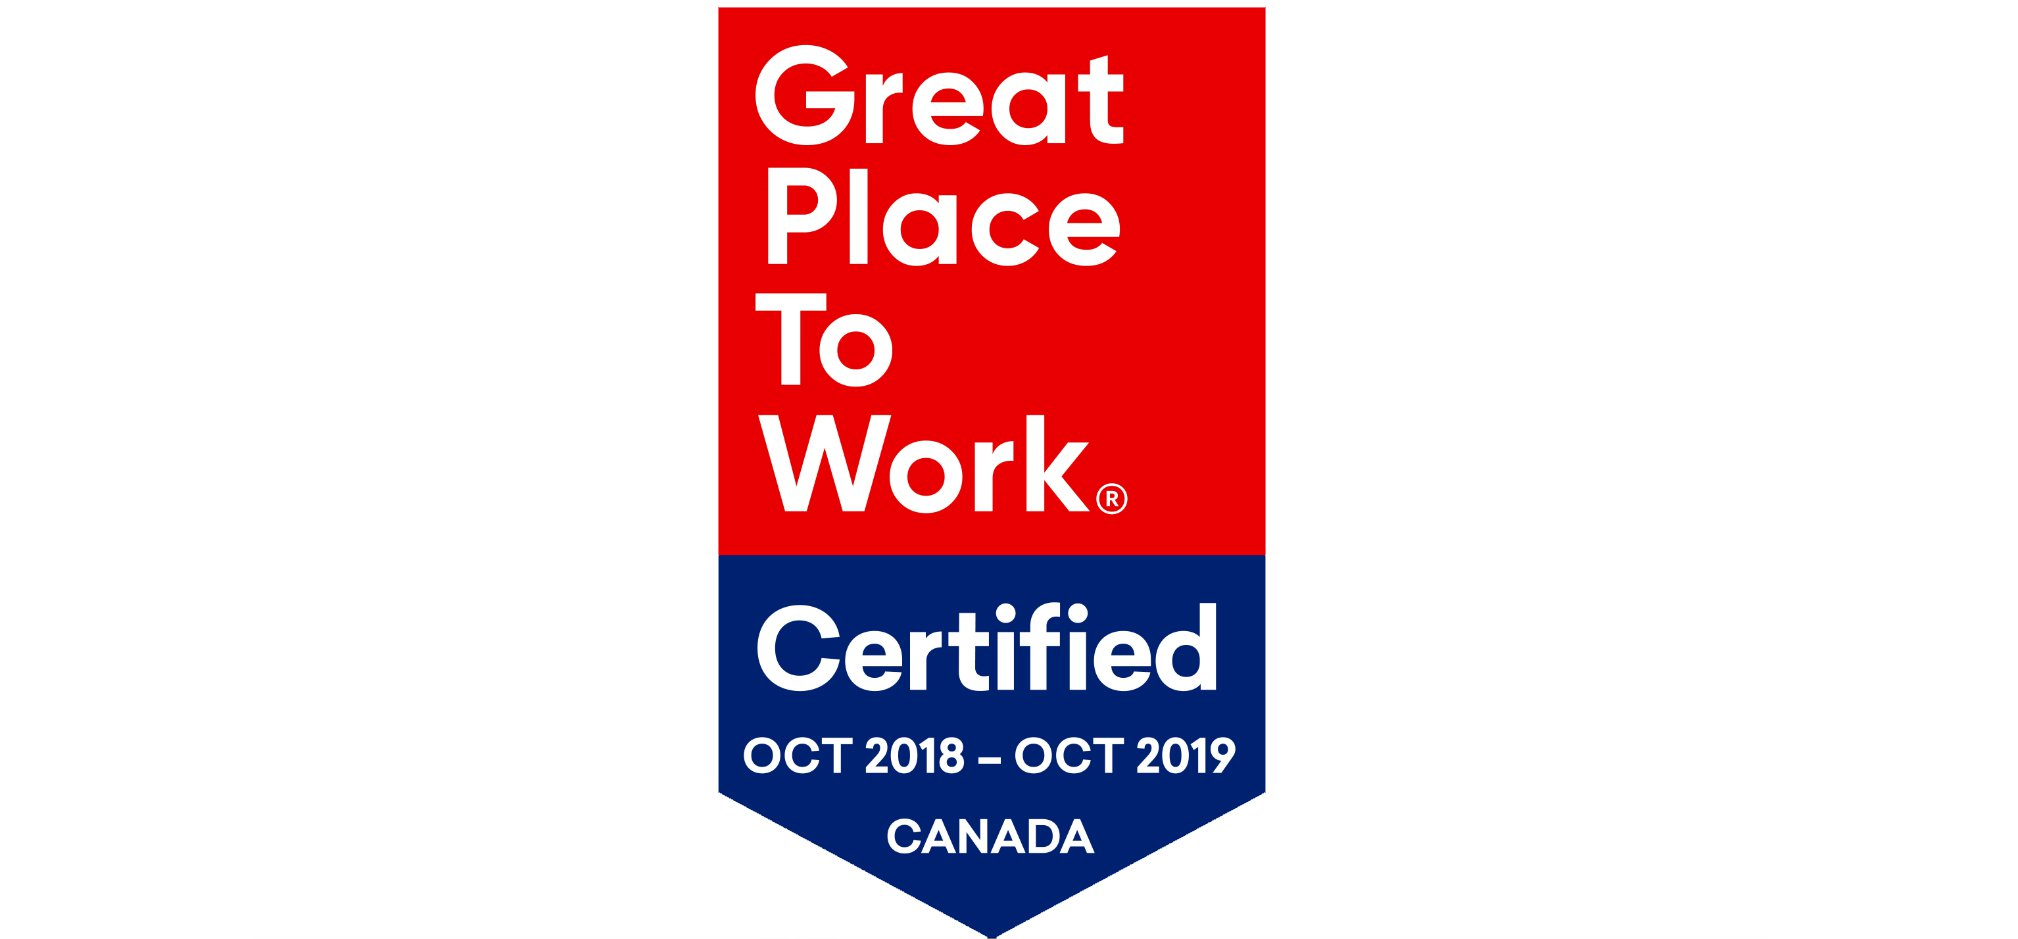 News Woodbine Racetrack Wiring Harness Design Jobs In Canada Entertainment Certified As Great Workplace For The Second Consecutive Year